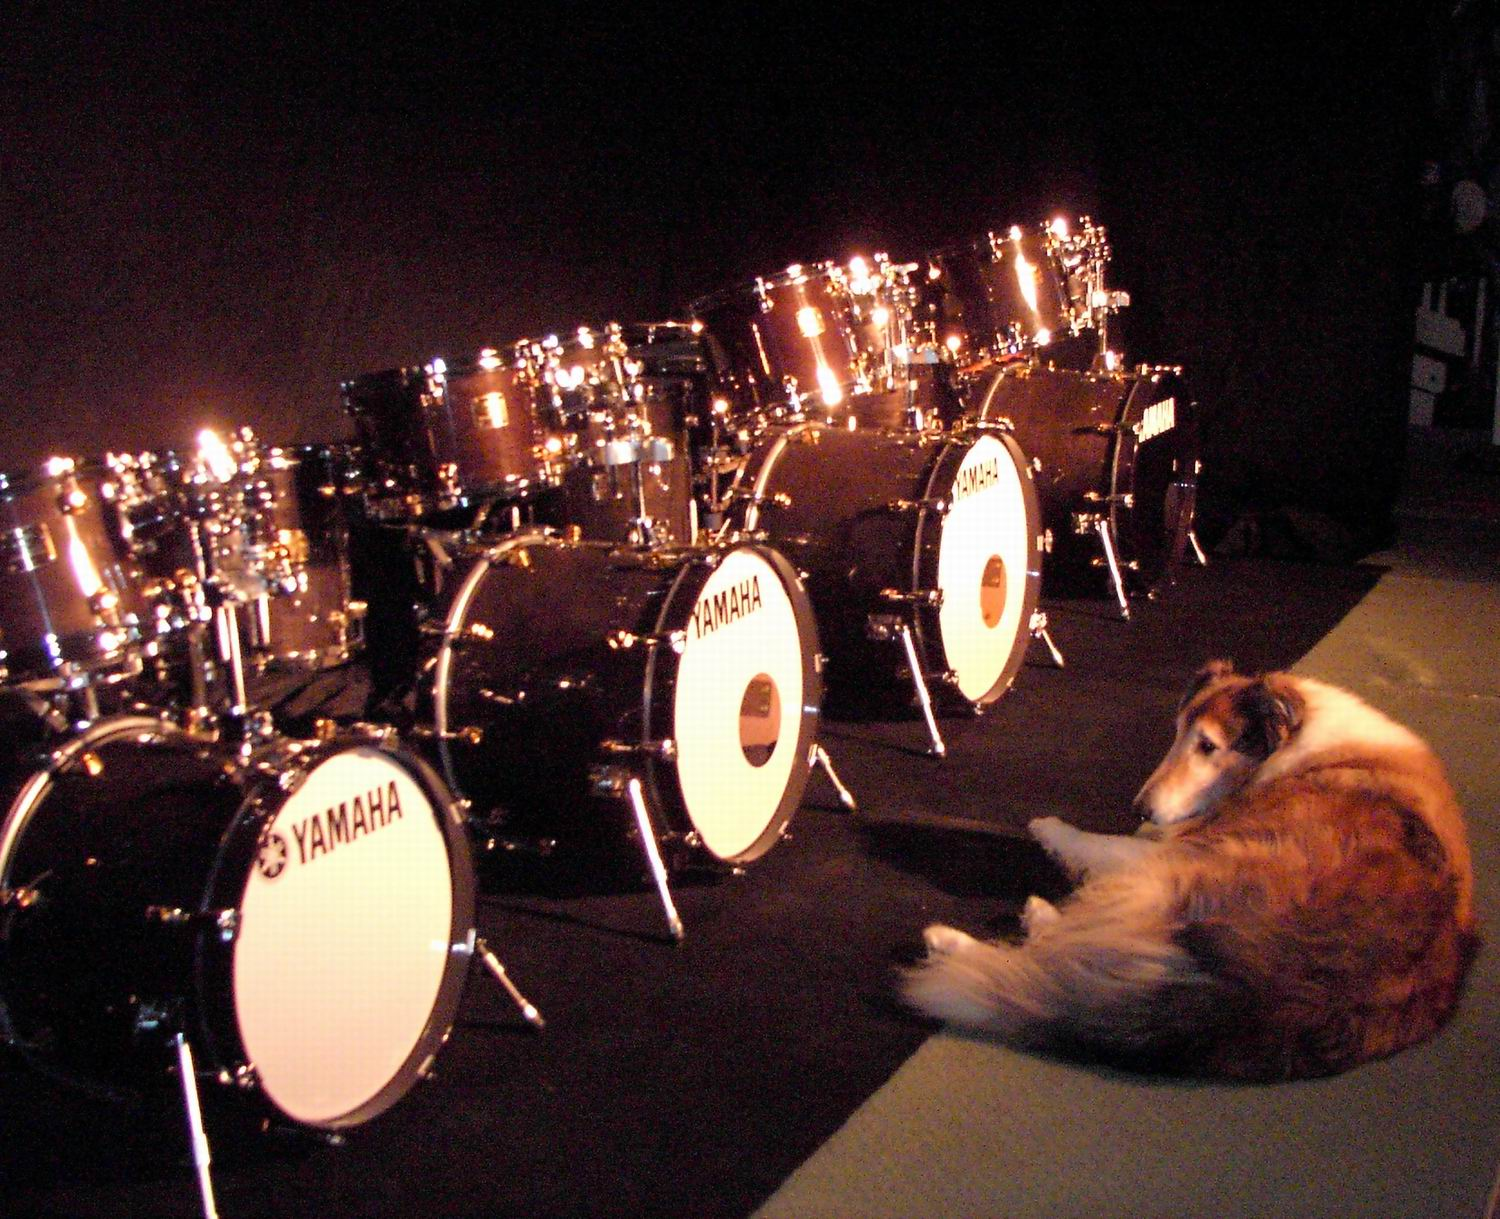 Intellasound / Herc with his Yamaha kits